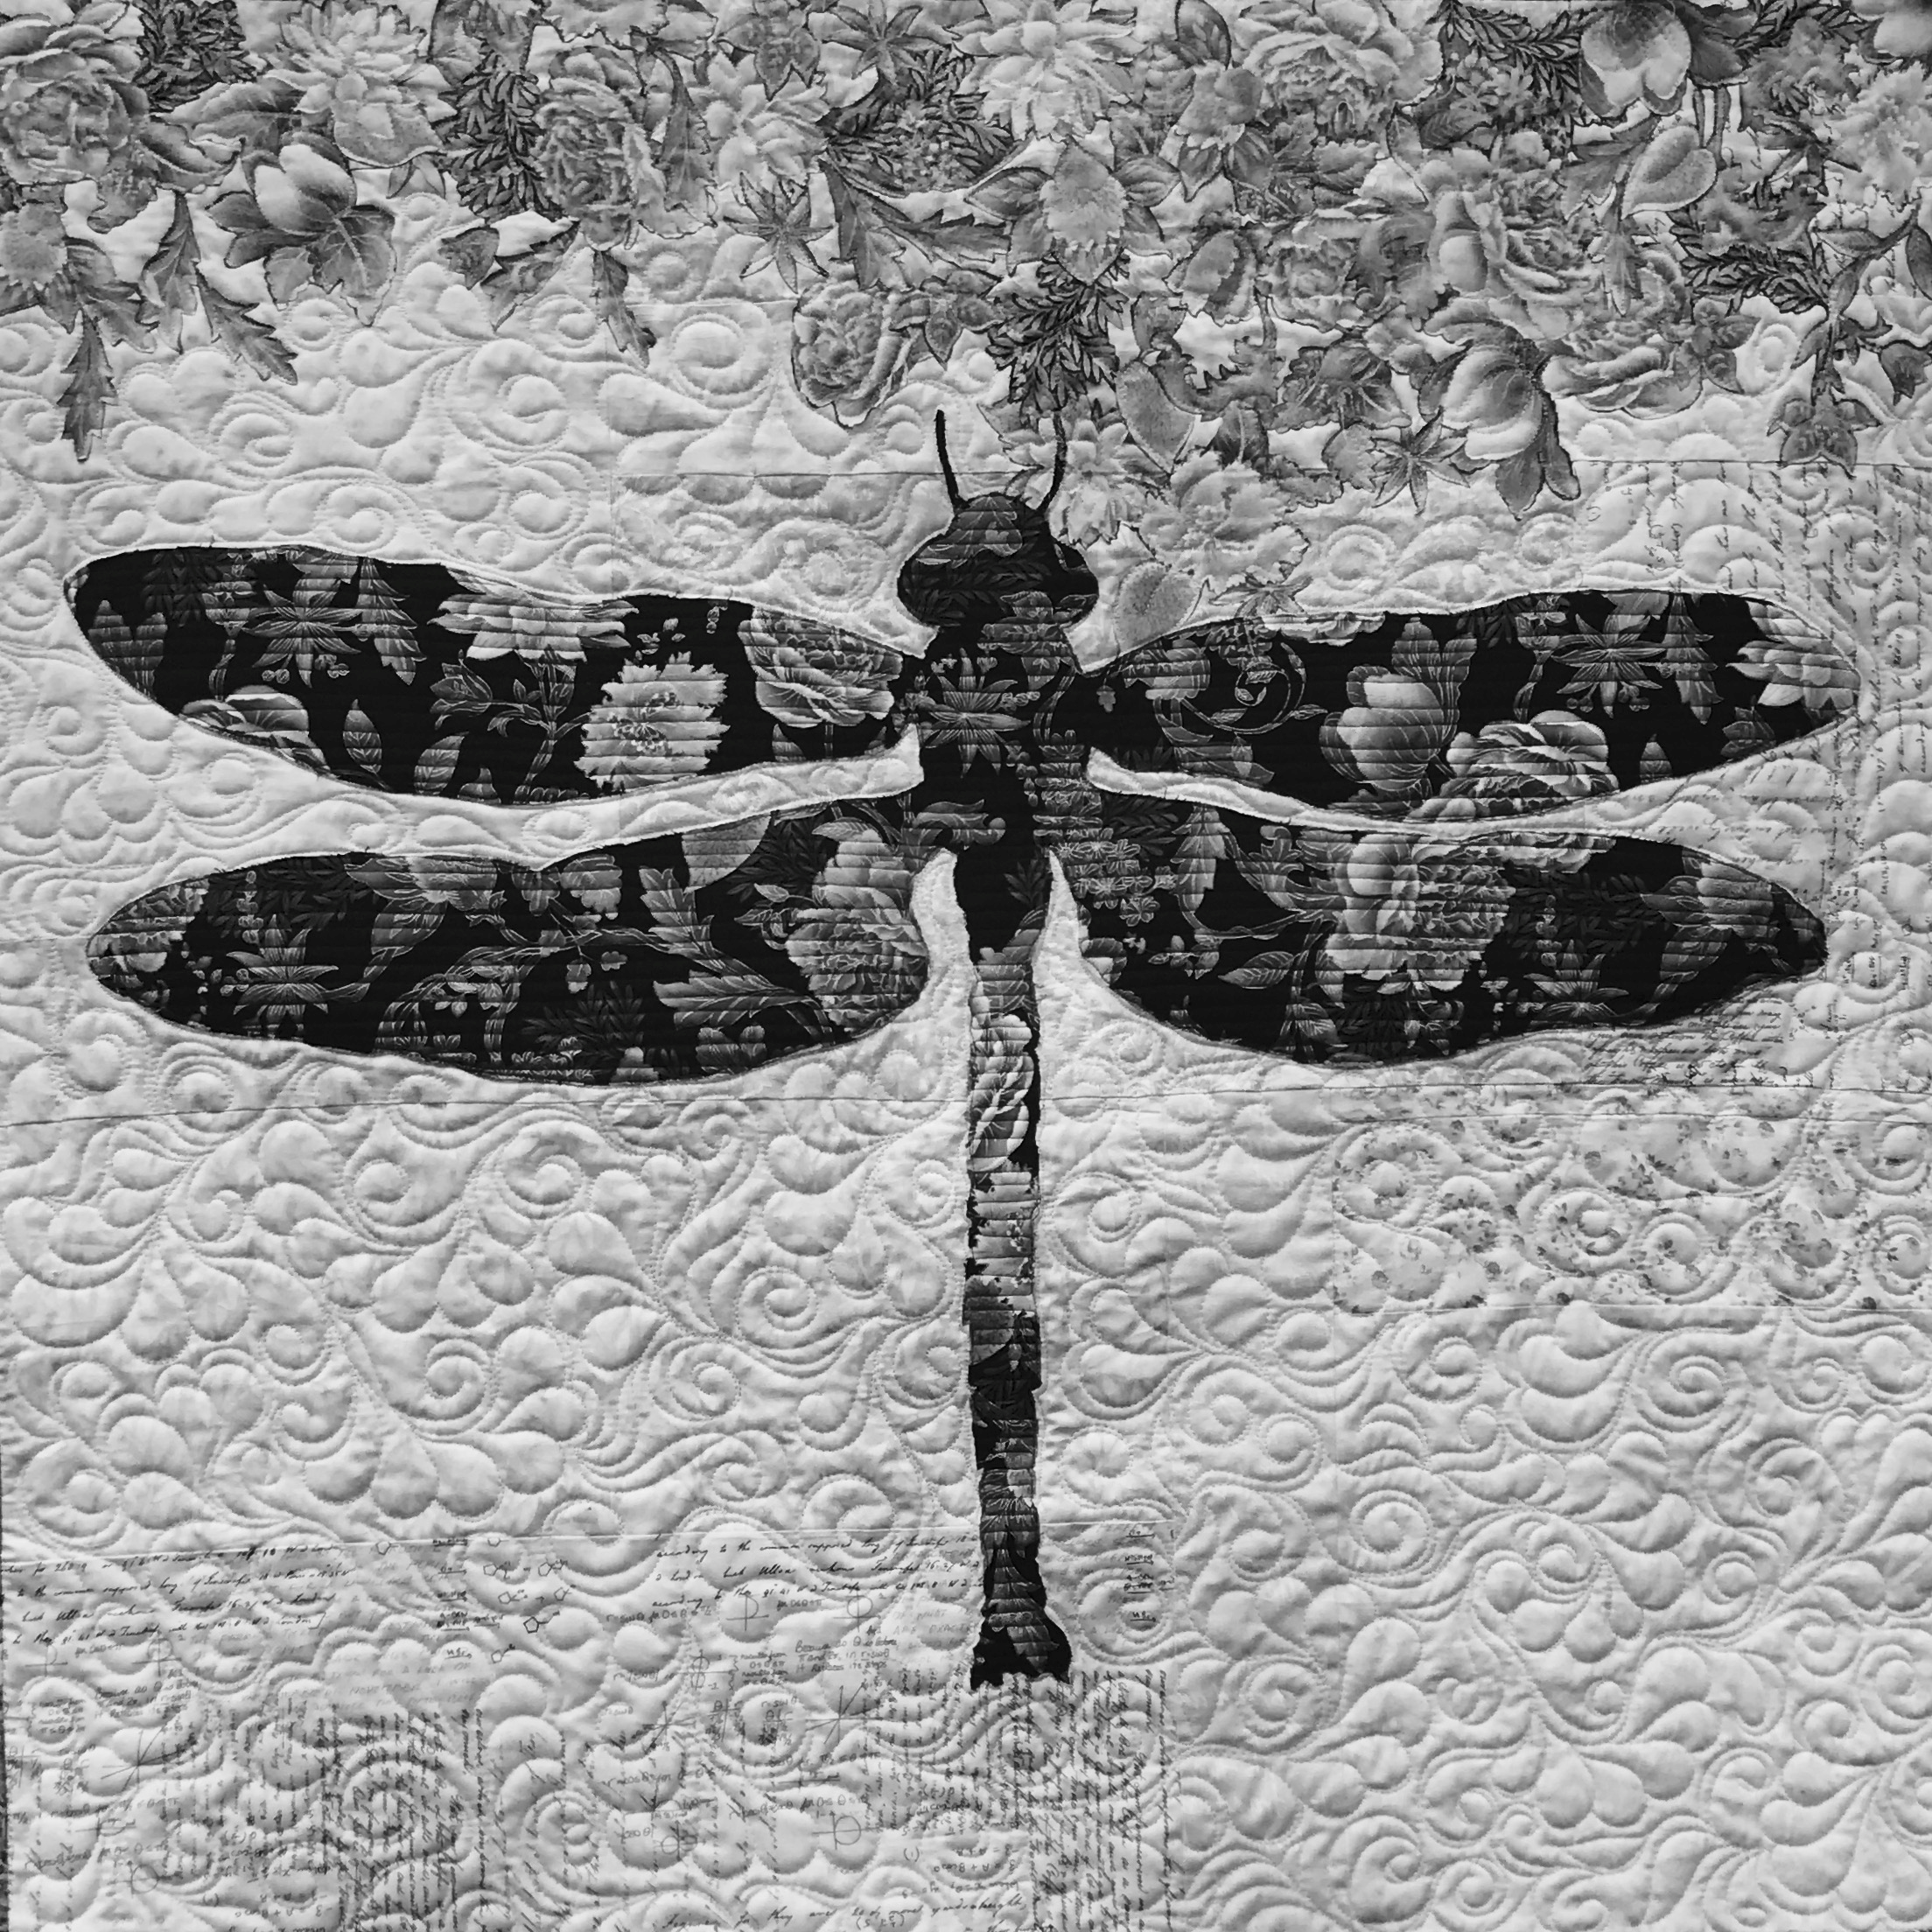 Image of dragonfly quilt in black and white.